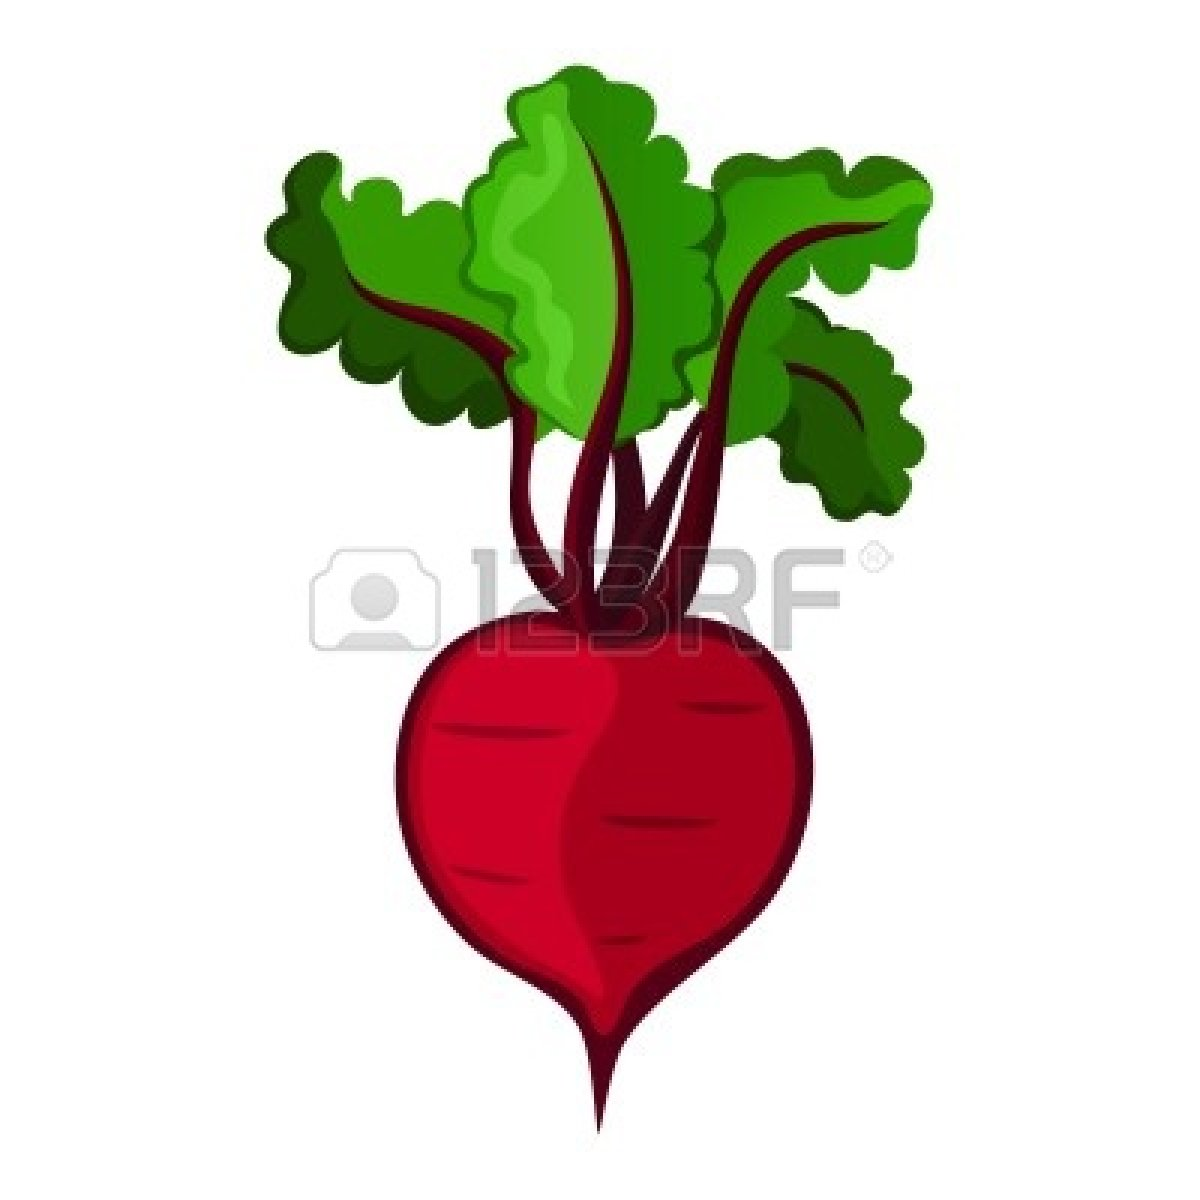 Beetroot clipart single vegetable Clipart Clipart 20clipart Panda beet%20clipart